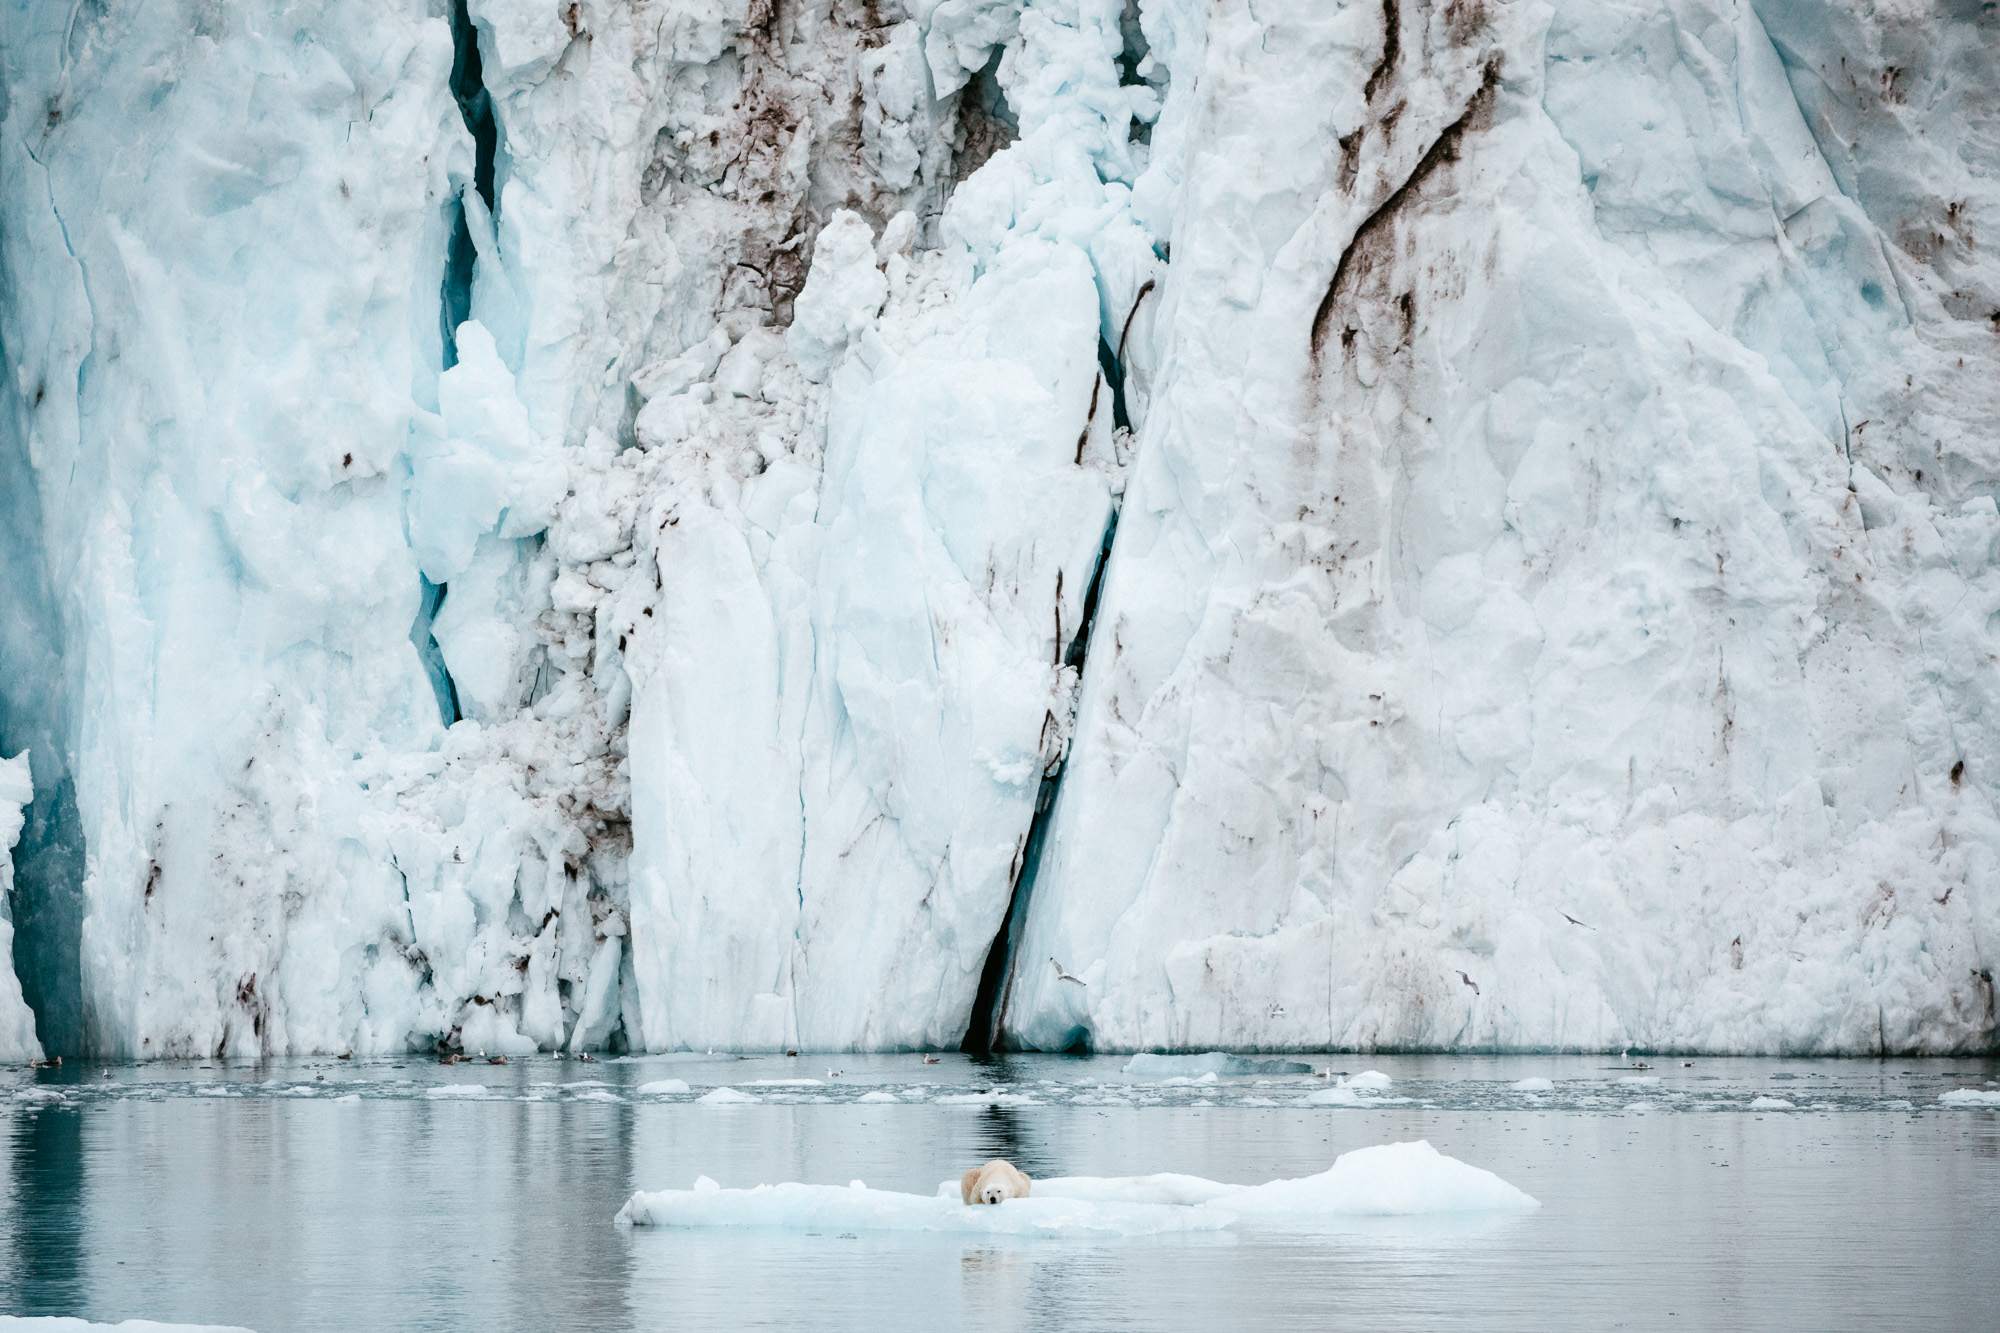 Polar bear on the ice in front of a glacier in Svalbard, Spitsbergen, Norway